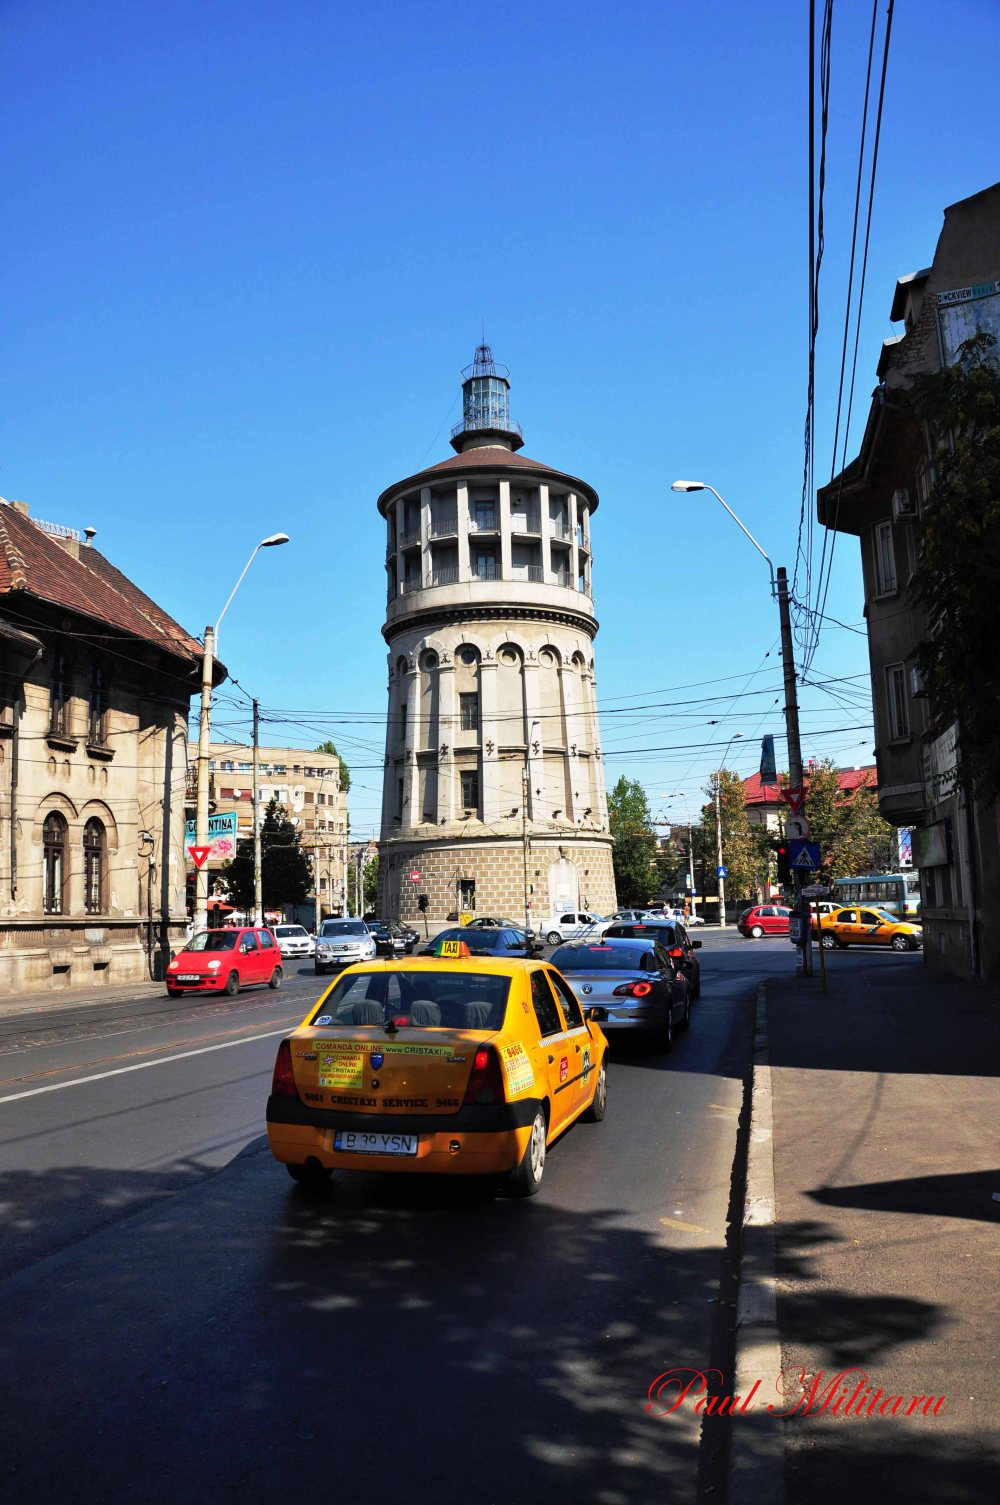 Bucharest - Fire Tower (1890)